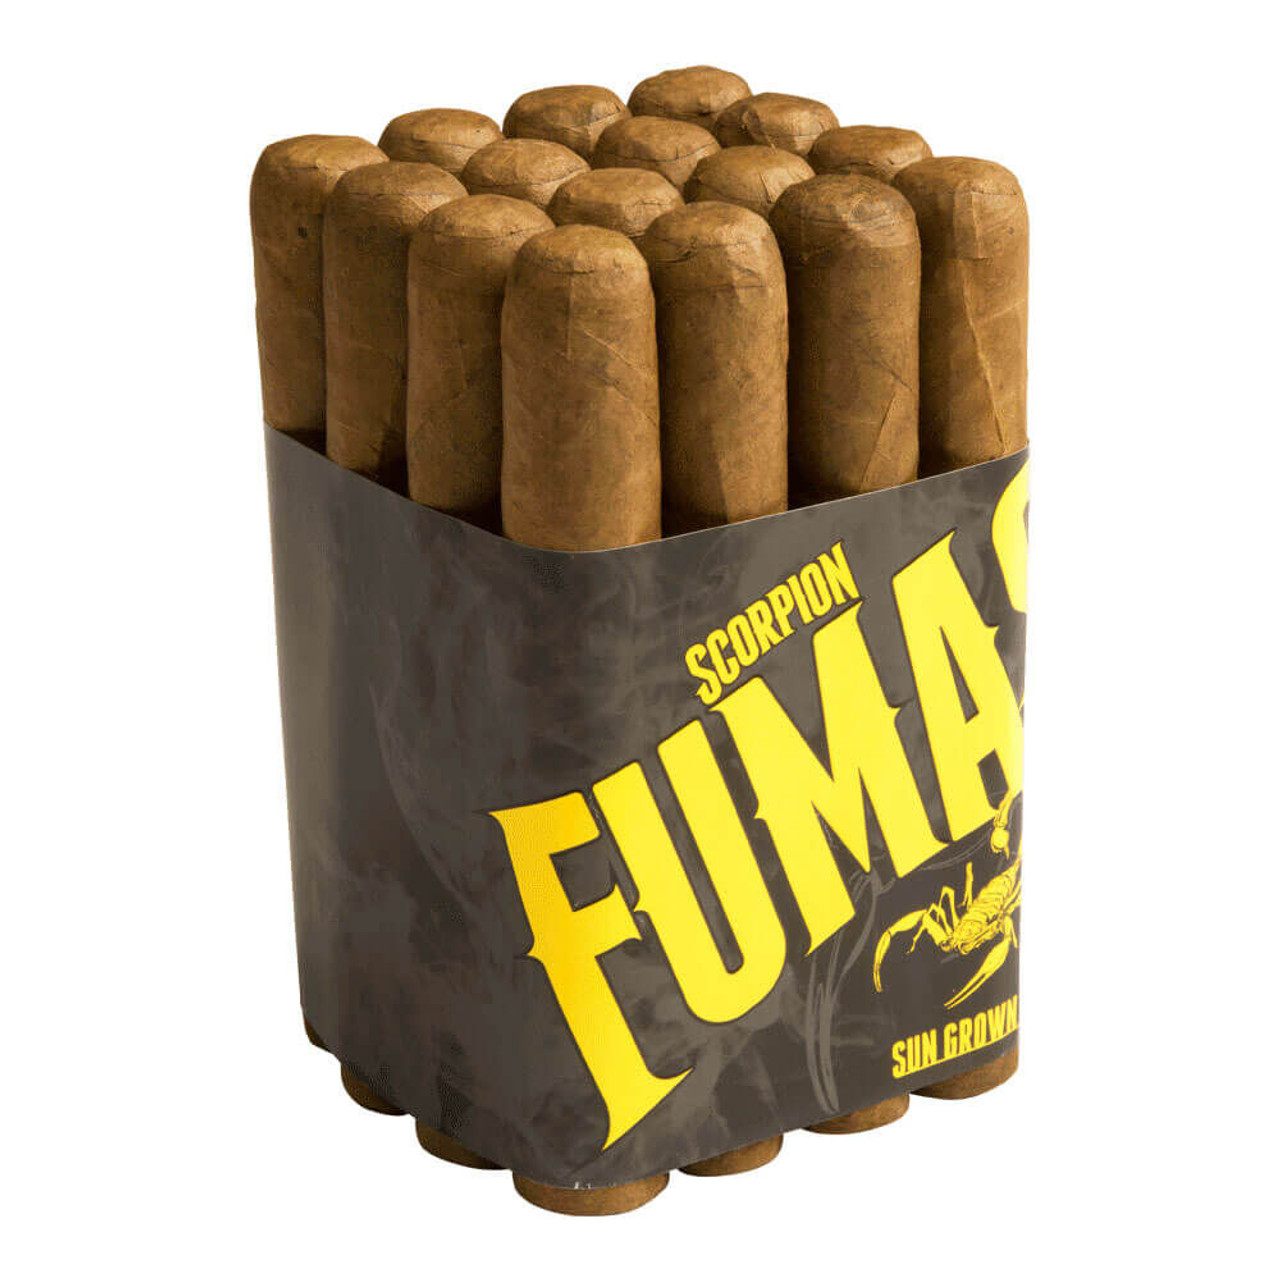 Camacho Scorpion Fumas Sungrown Gordo Cigars - 6.0 x 60 (Bundle of 16)